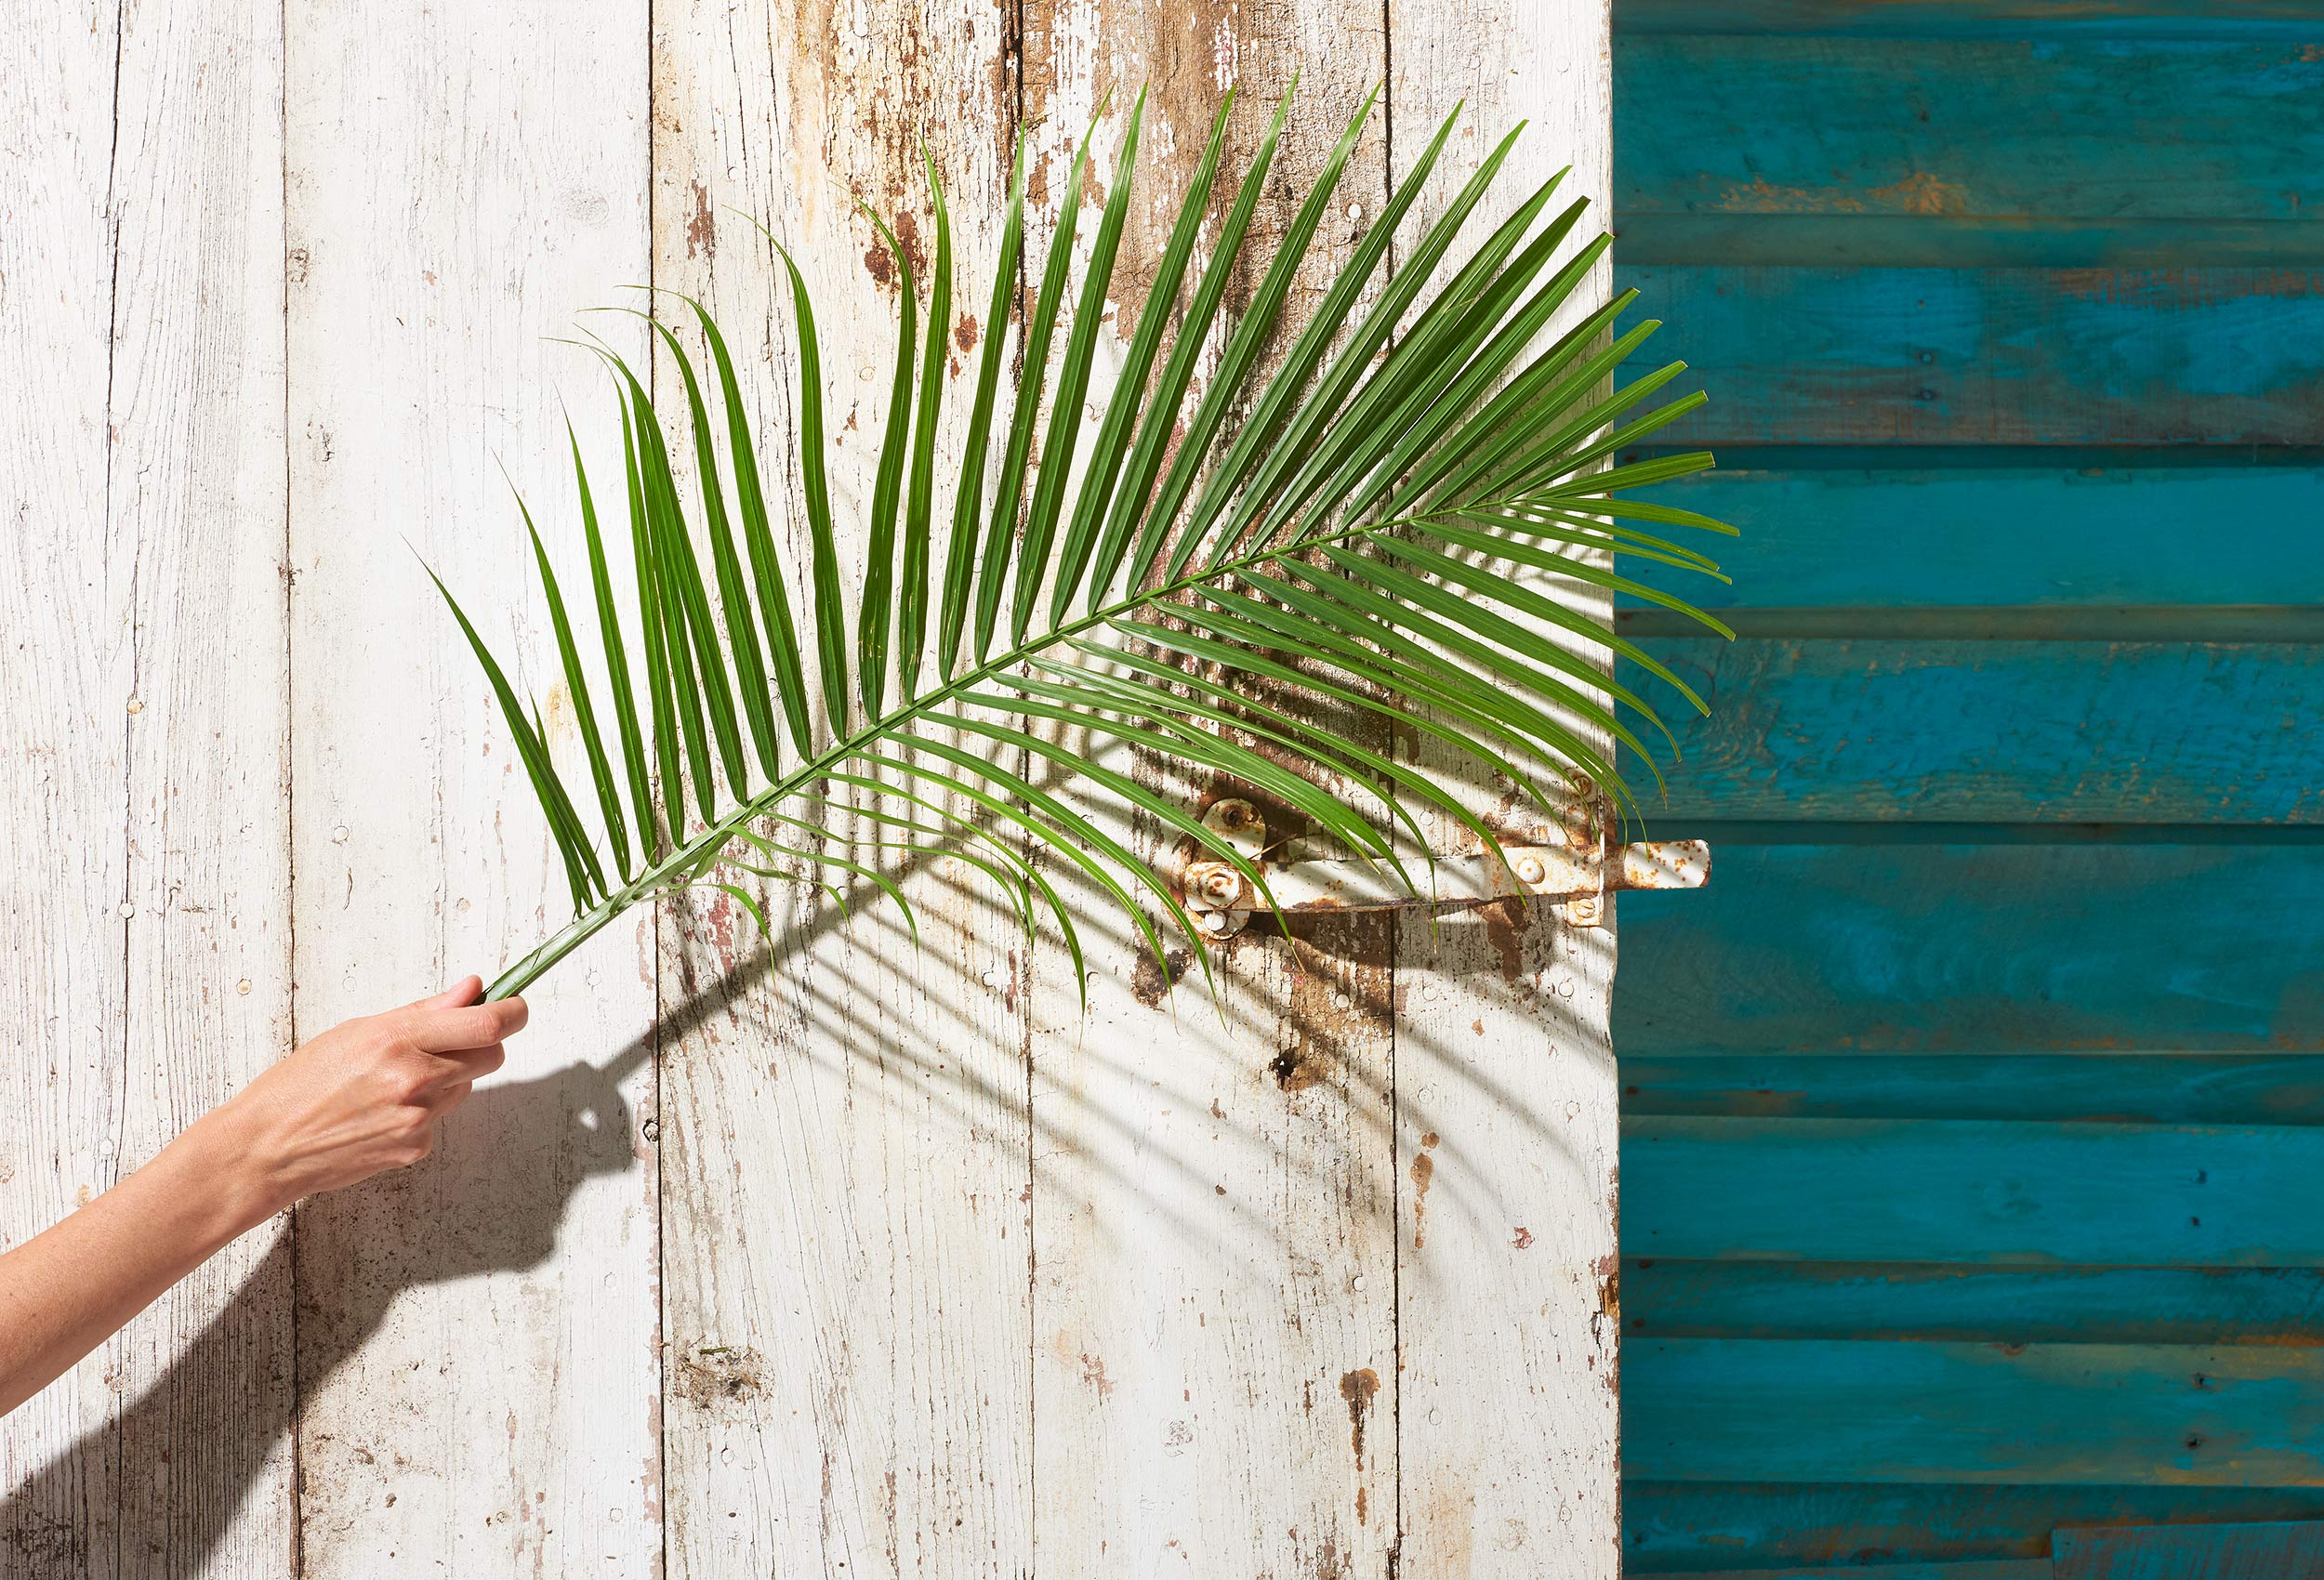 Female hand holding palm leaf in front of aged white barn door and aged blue wall